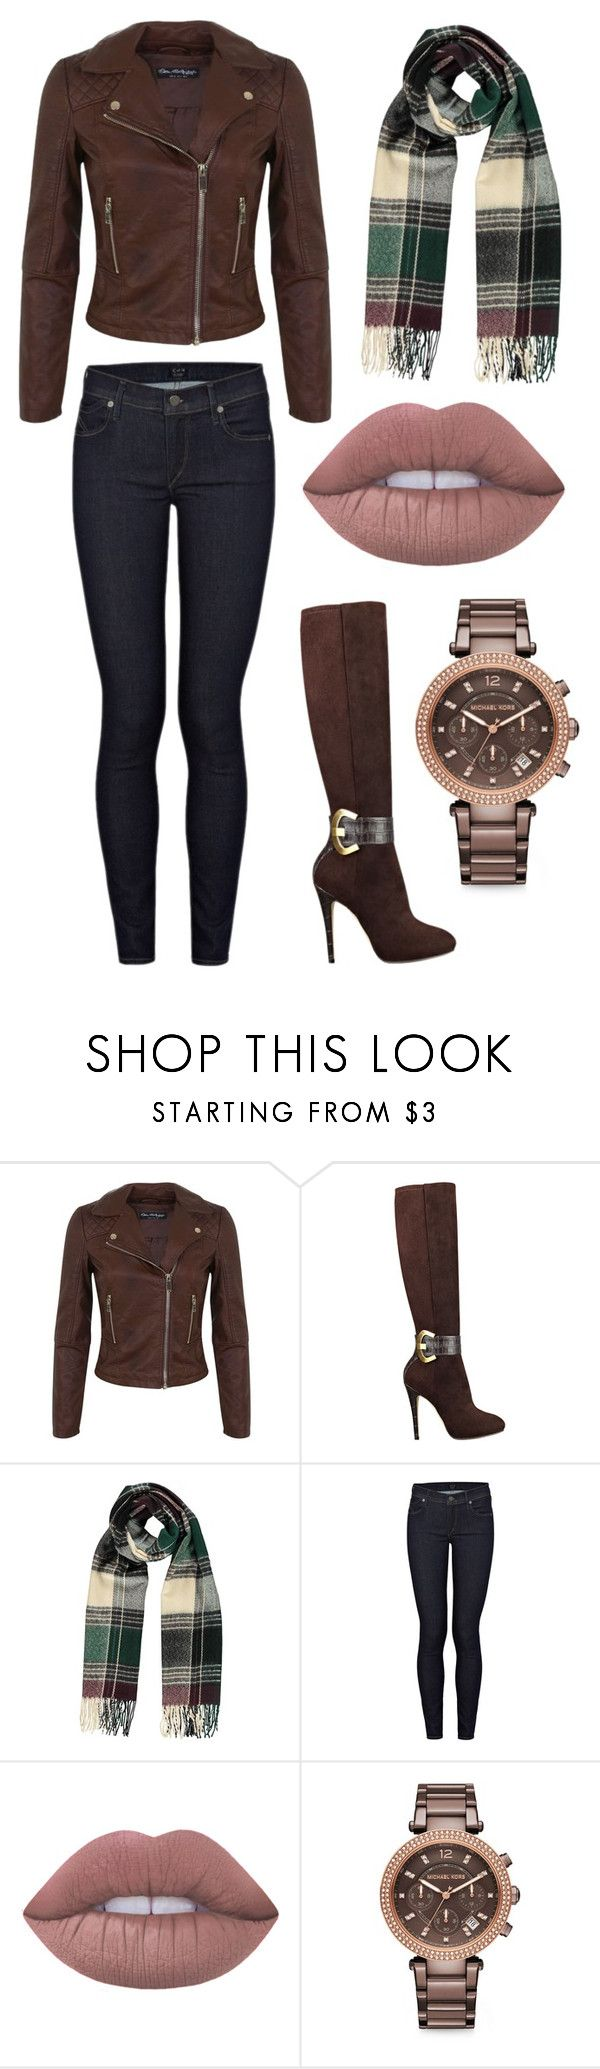 """Autumn Chic"" by alphashe on Polyvore featuring Miss Selfridge, GUESS, Citizens of Humanity, Lime Crime, Michael Kors, casual, chic and brown"